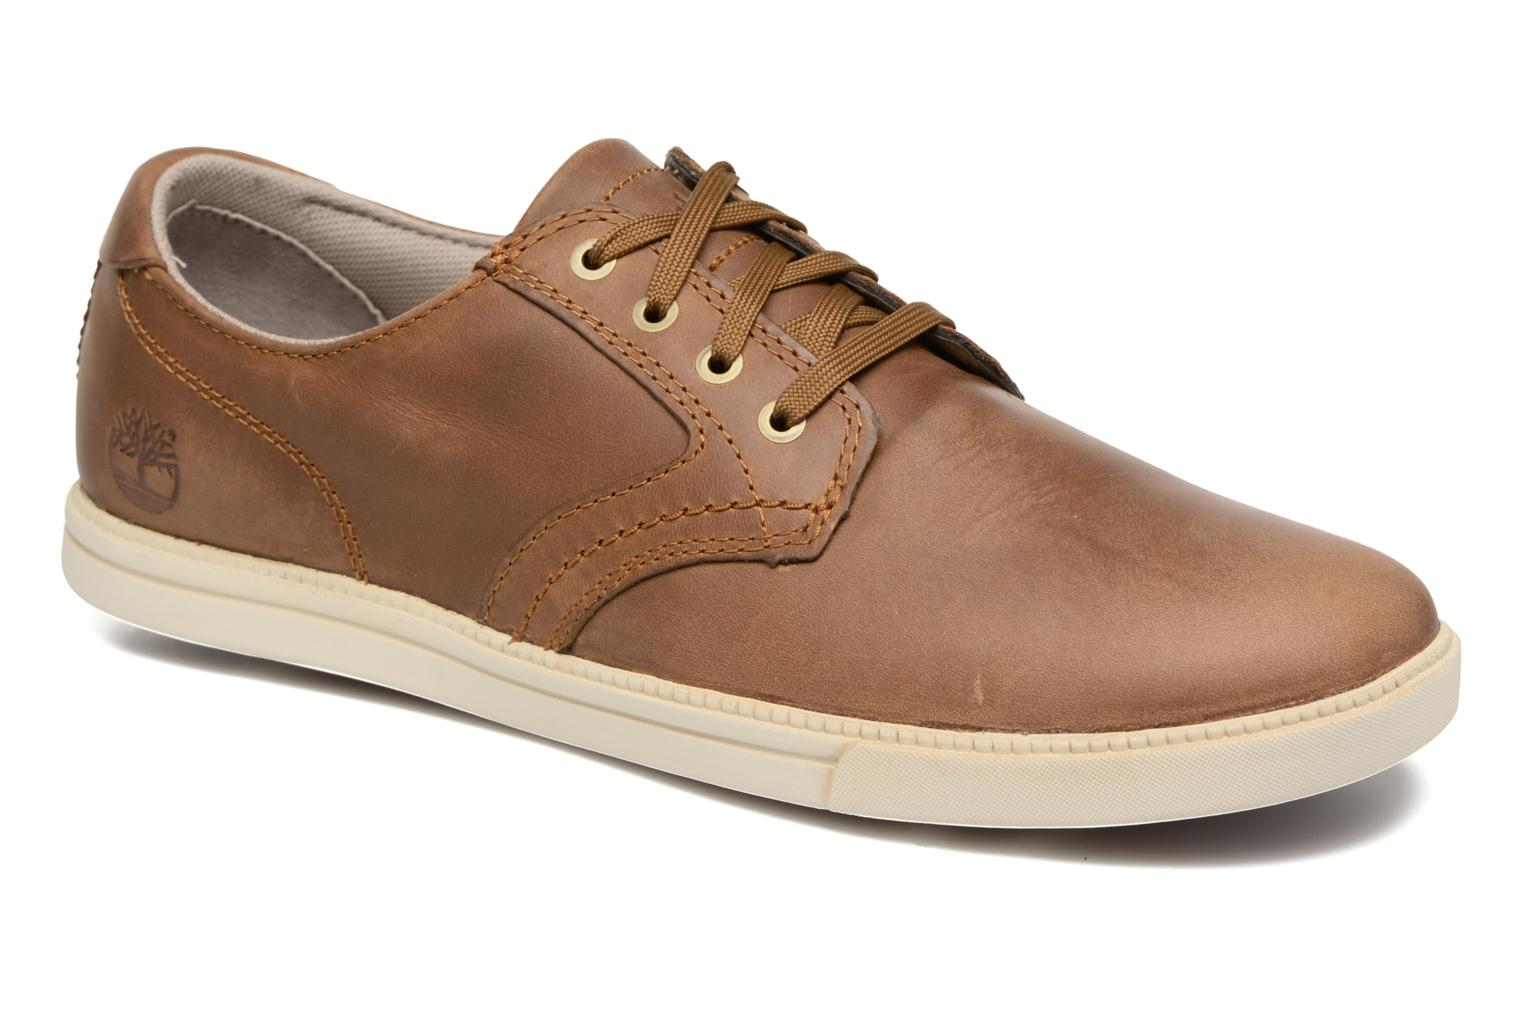 sneakers-fulk-lp-ox-by-timberland